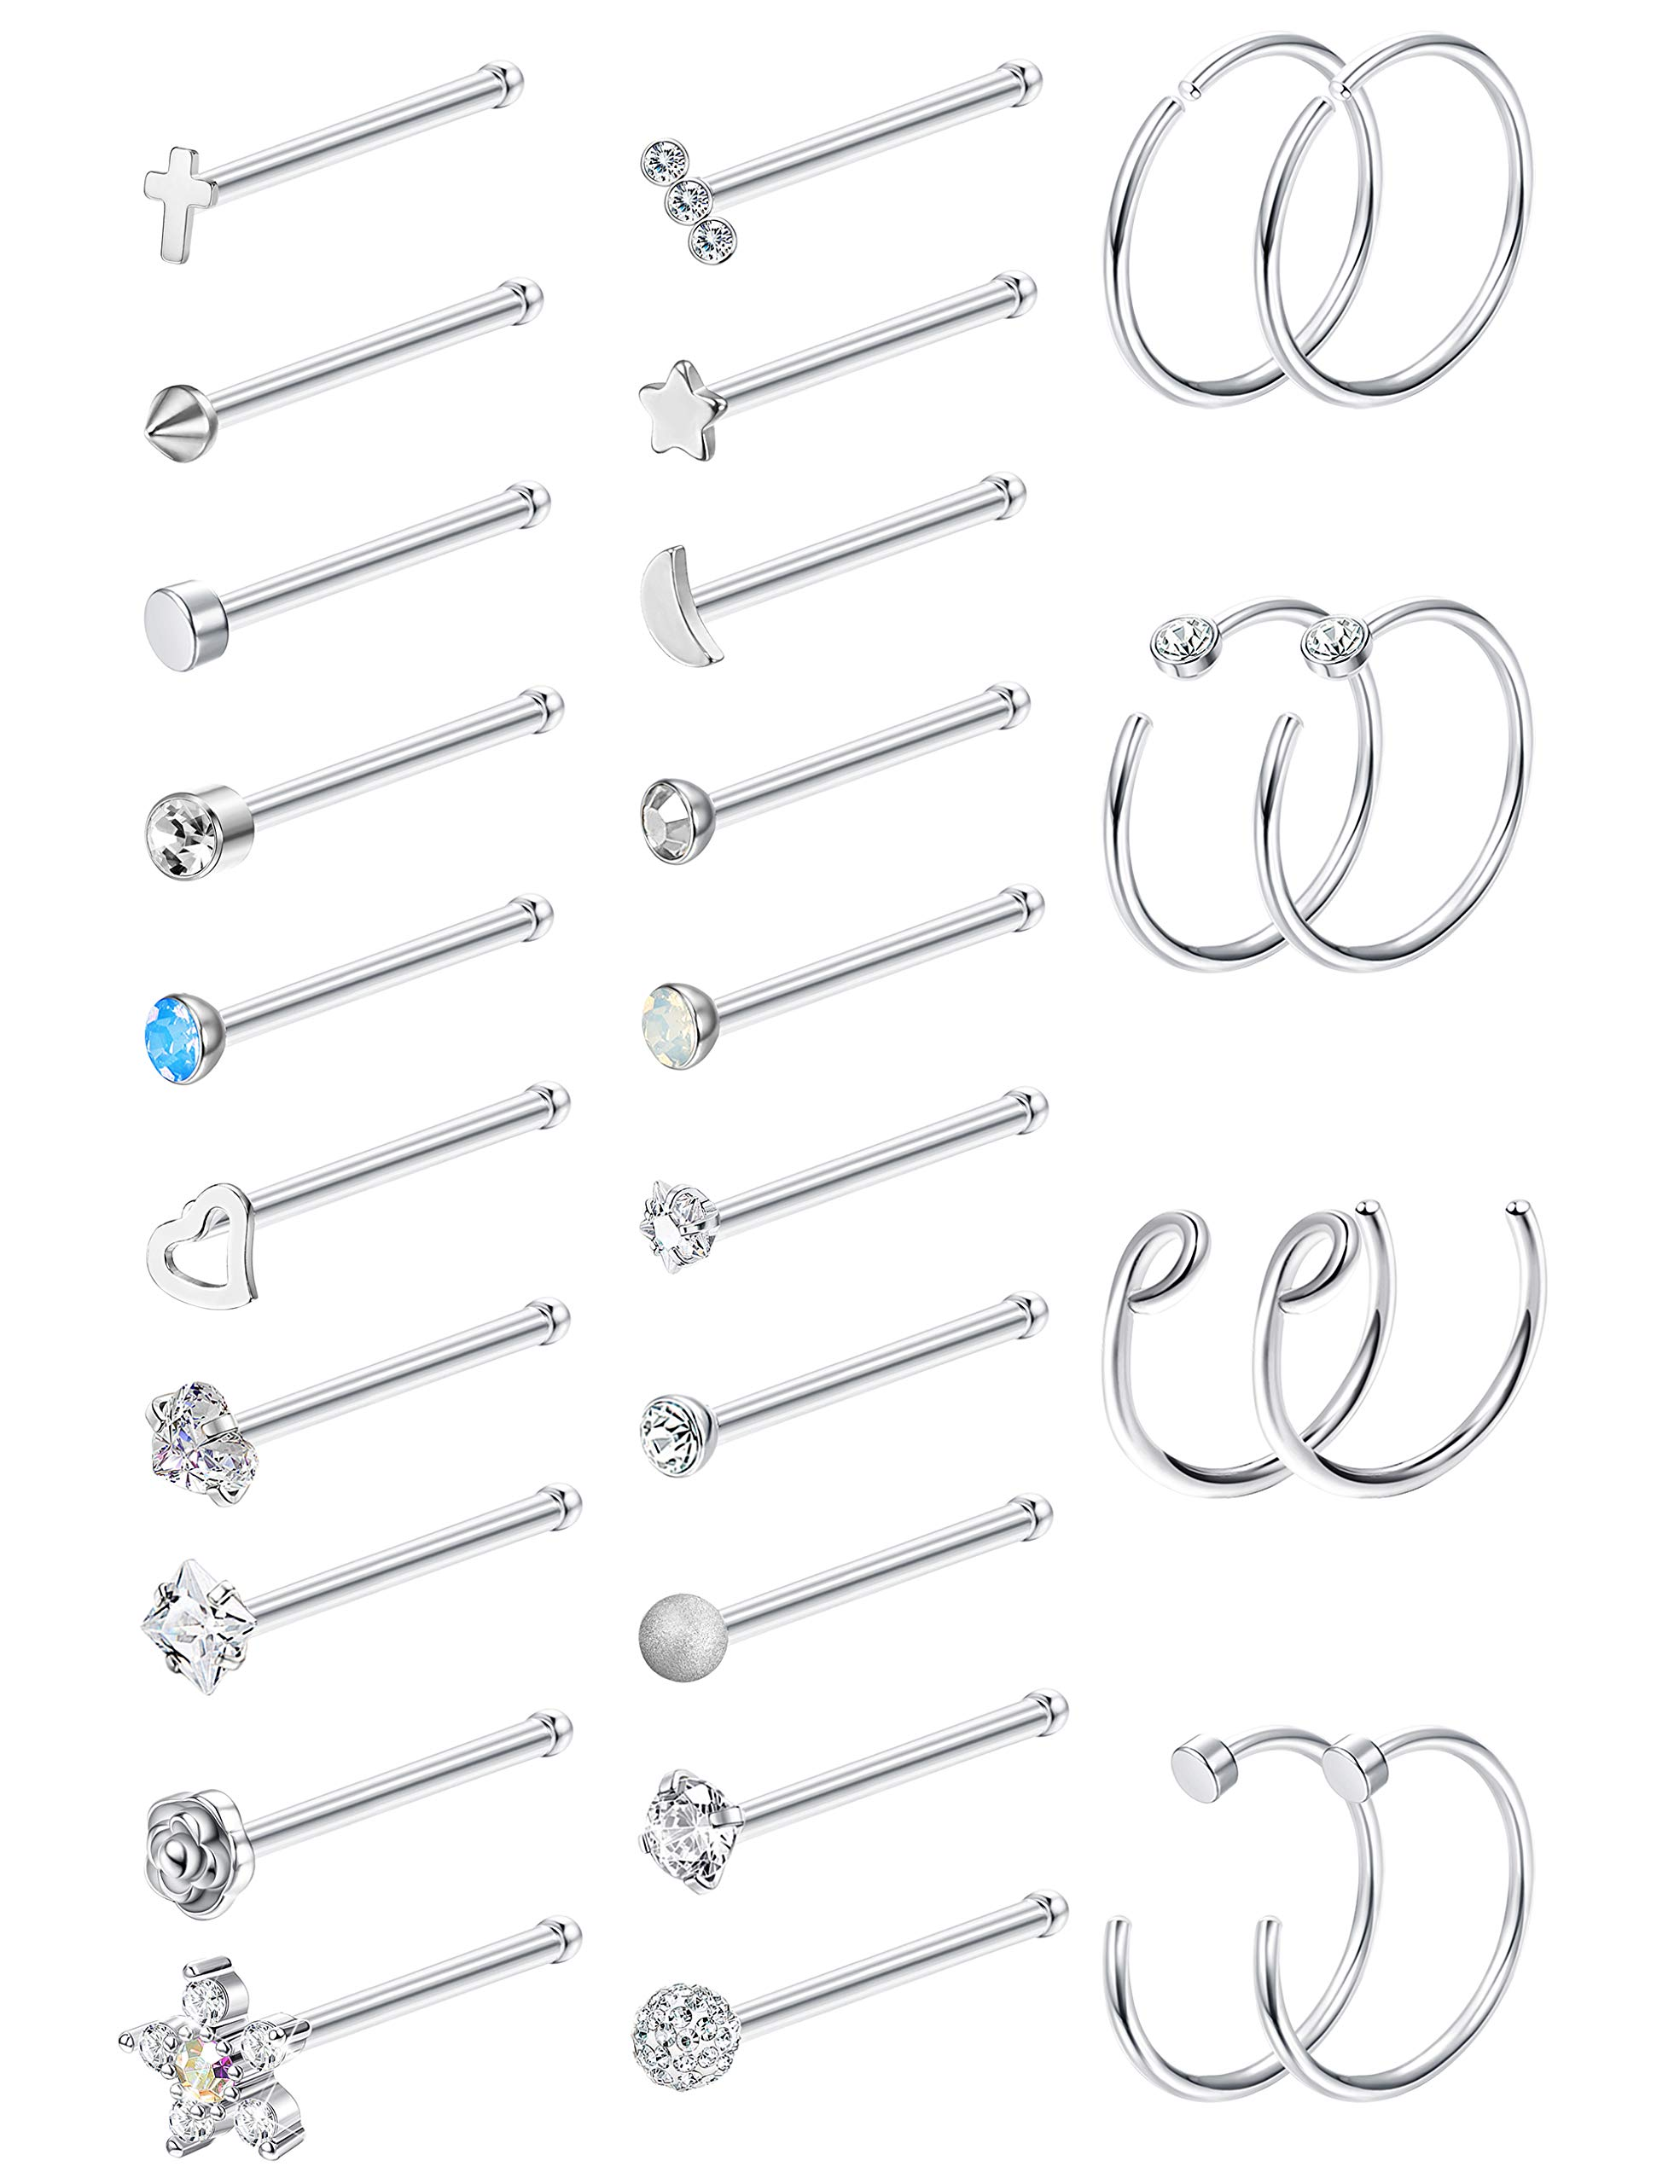 Milacolato 20G 28Pcs Stainless Steel Nose Stud Set Bone L-Shaped Screw Labret Lip Nose Ring Hoop Piercing Jewelry Bone-Shape by Milacolato